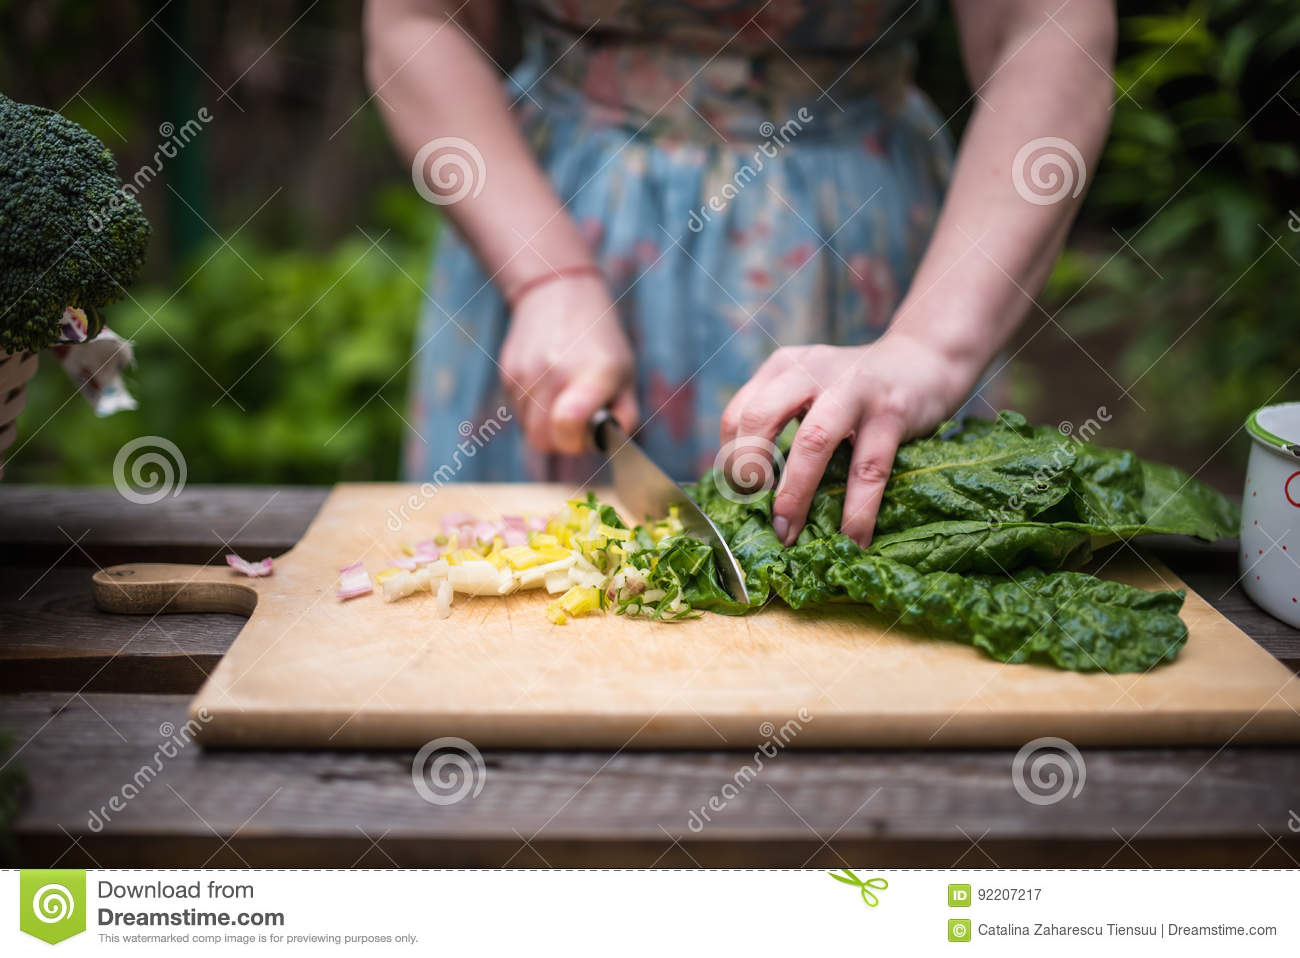 Young woman cutting mangold leaves for a salad